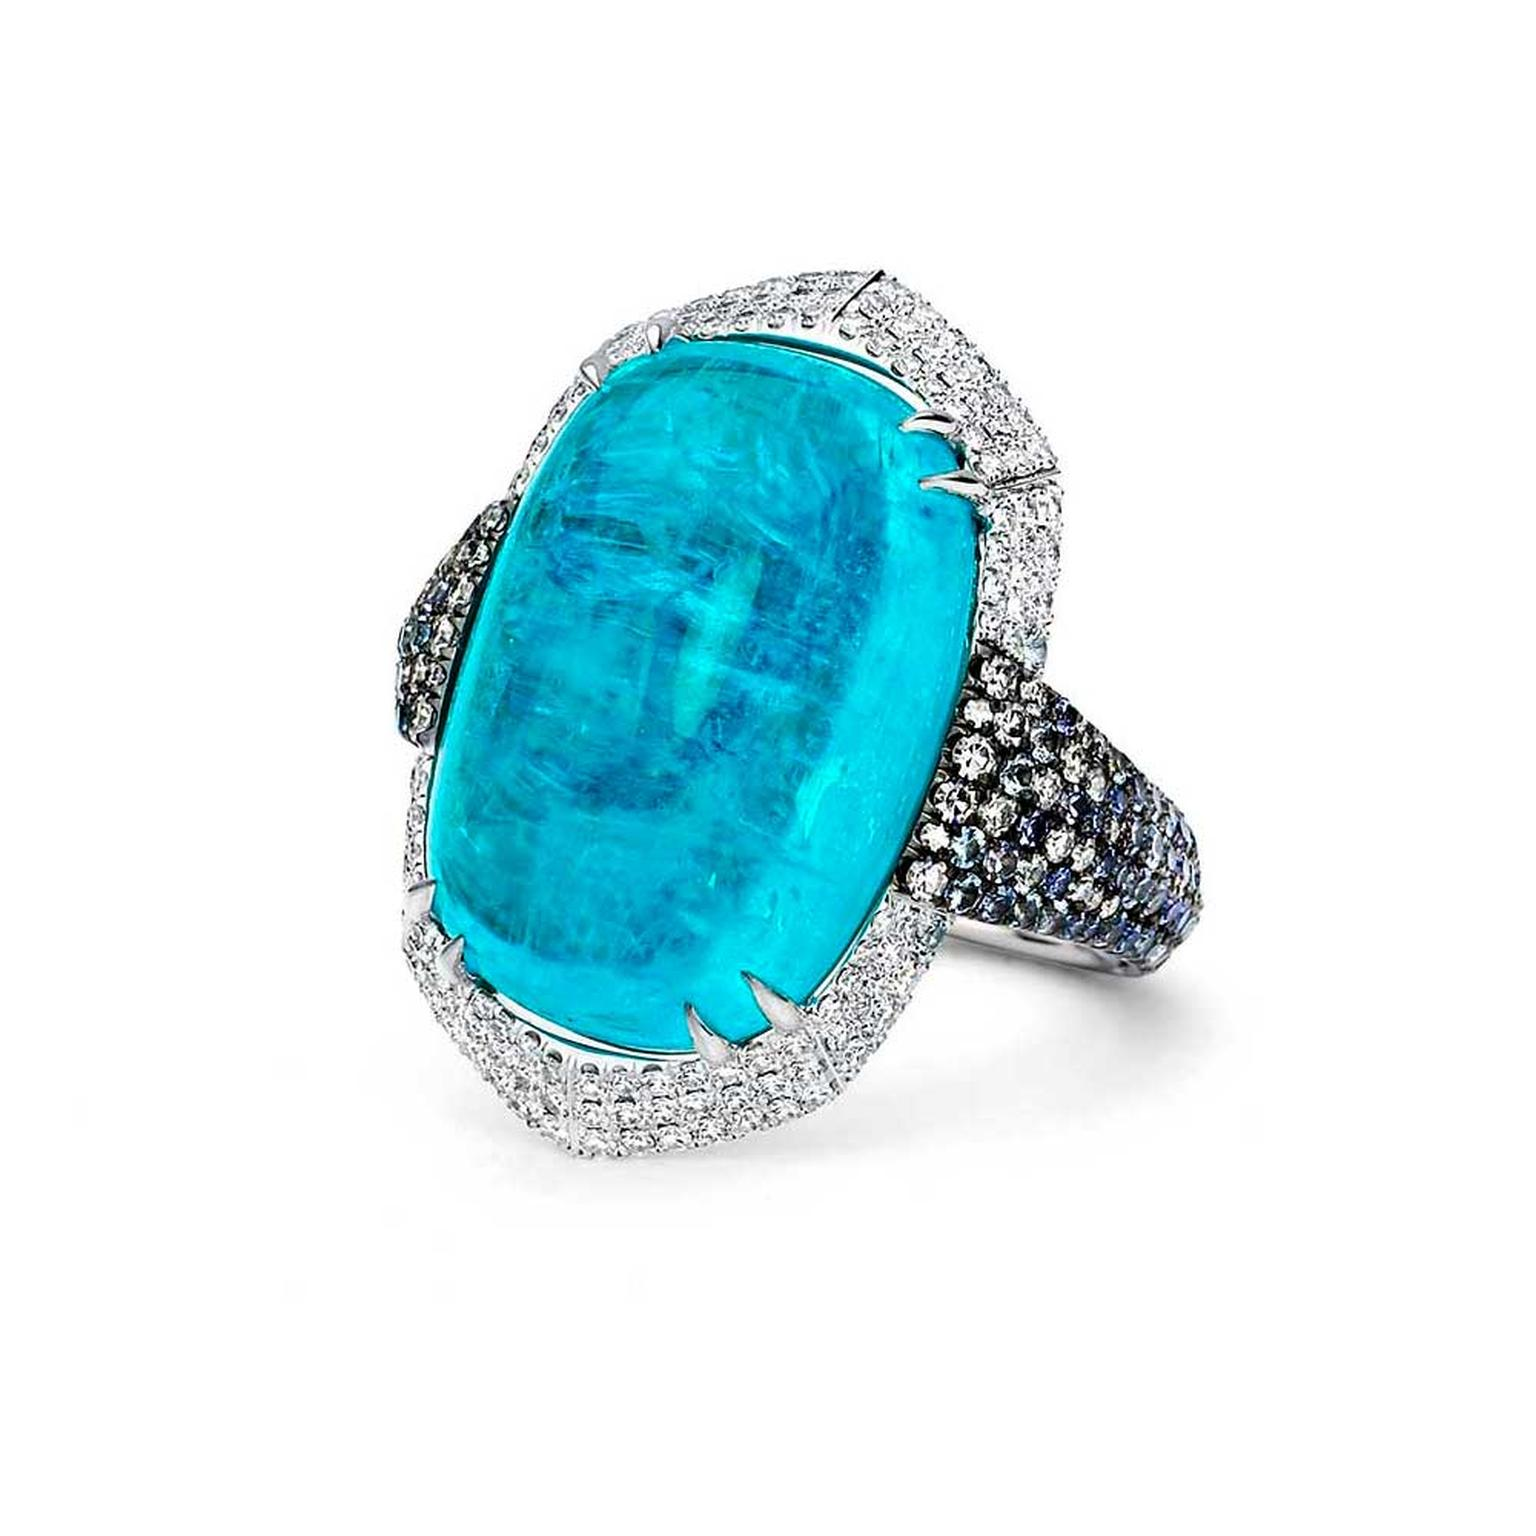 Martin Katz Paraíba tourmaline and white diamonds ring